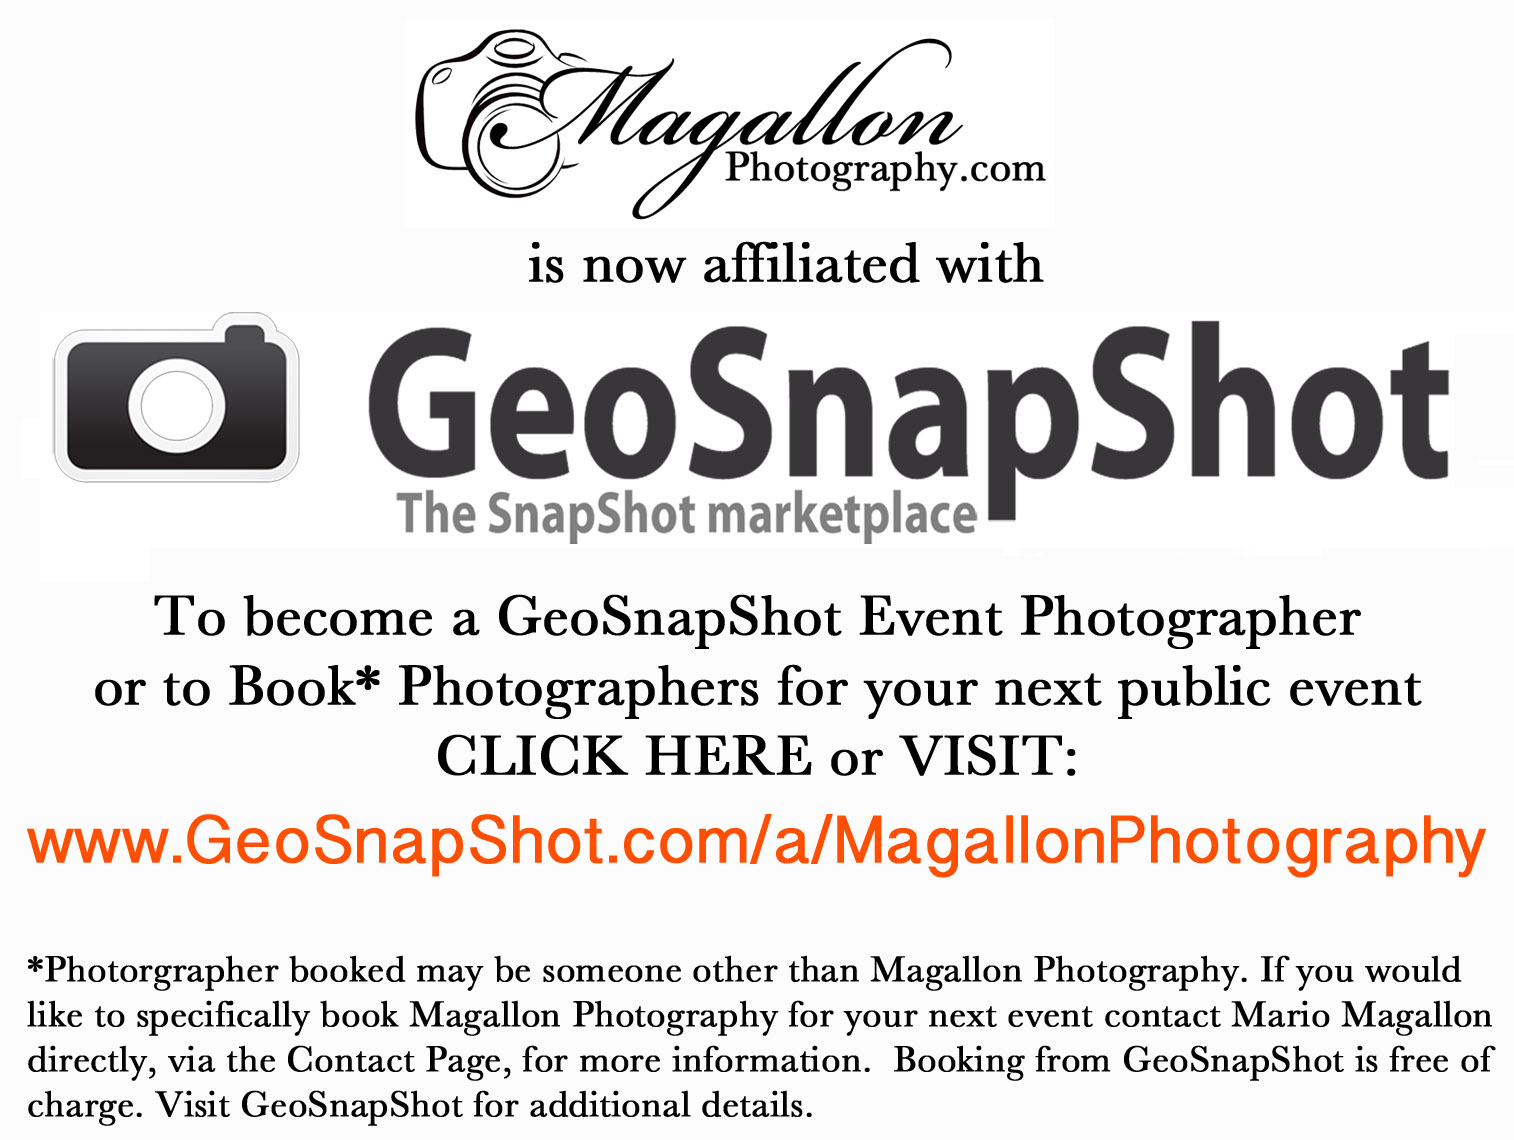 GeoSnapShot & Magallon Photography